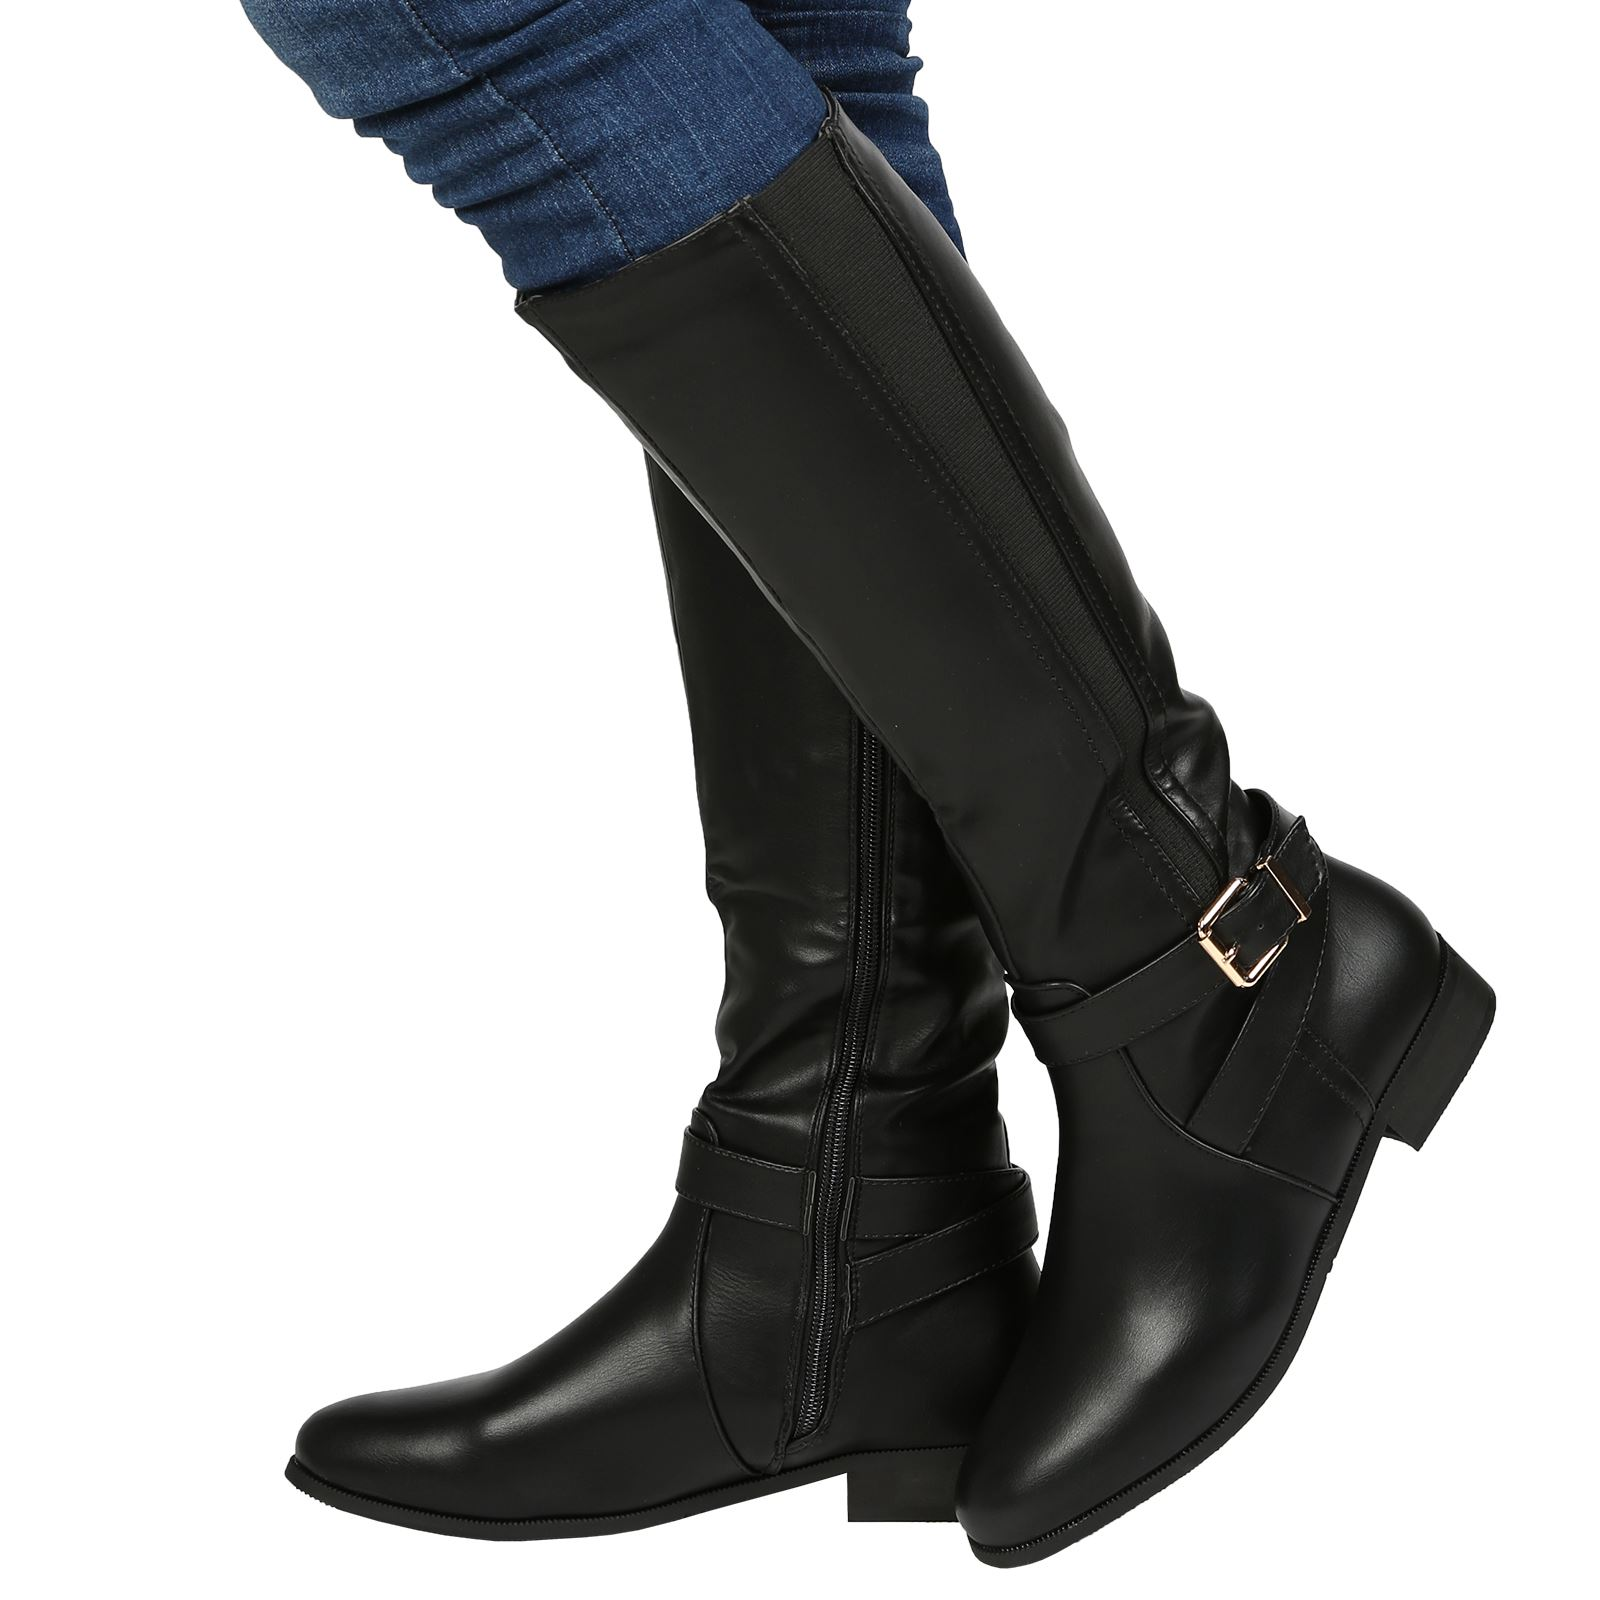 Elegant Details About Low Heel Faux Leather Mid Calf Boots Black Womens Shoes